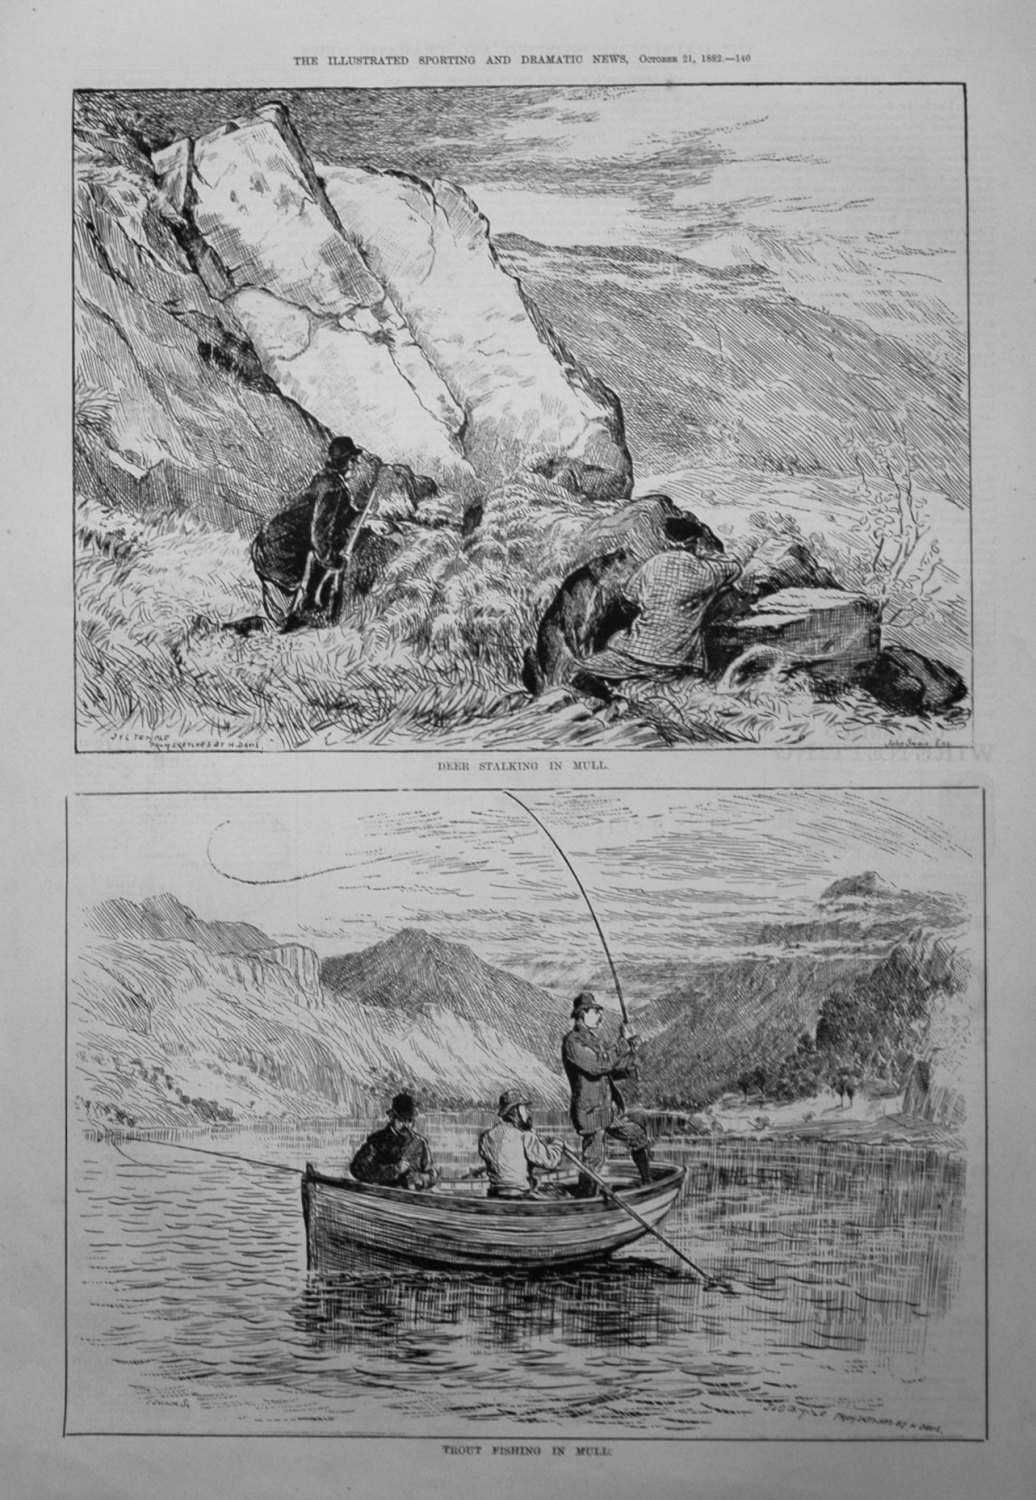 Trout Fishing in Mull. 1882.